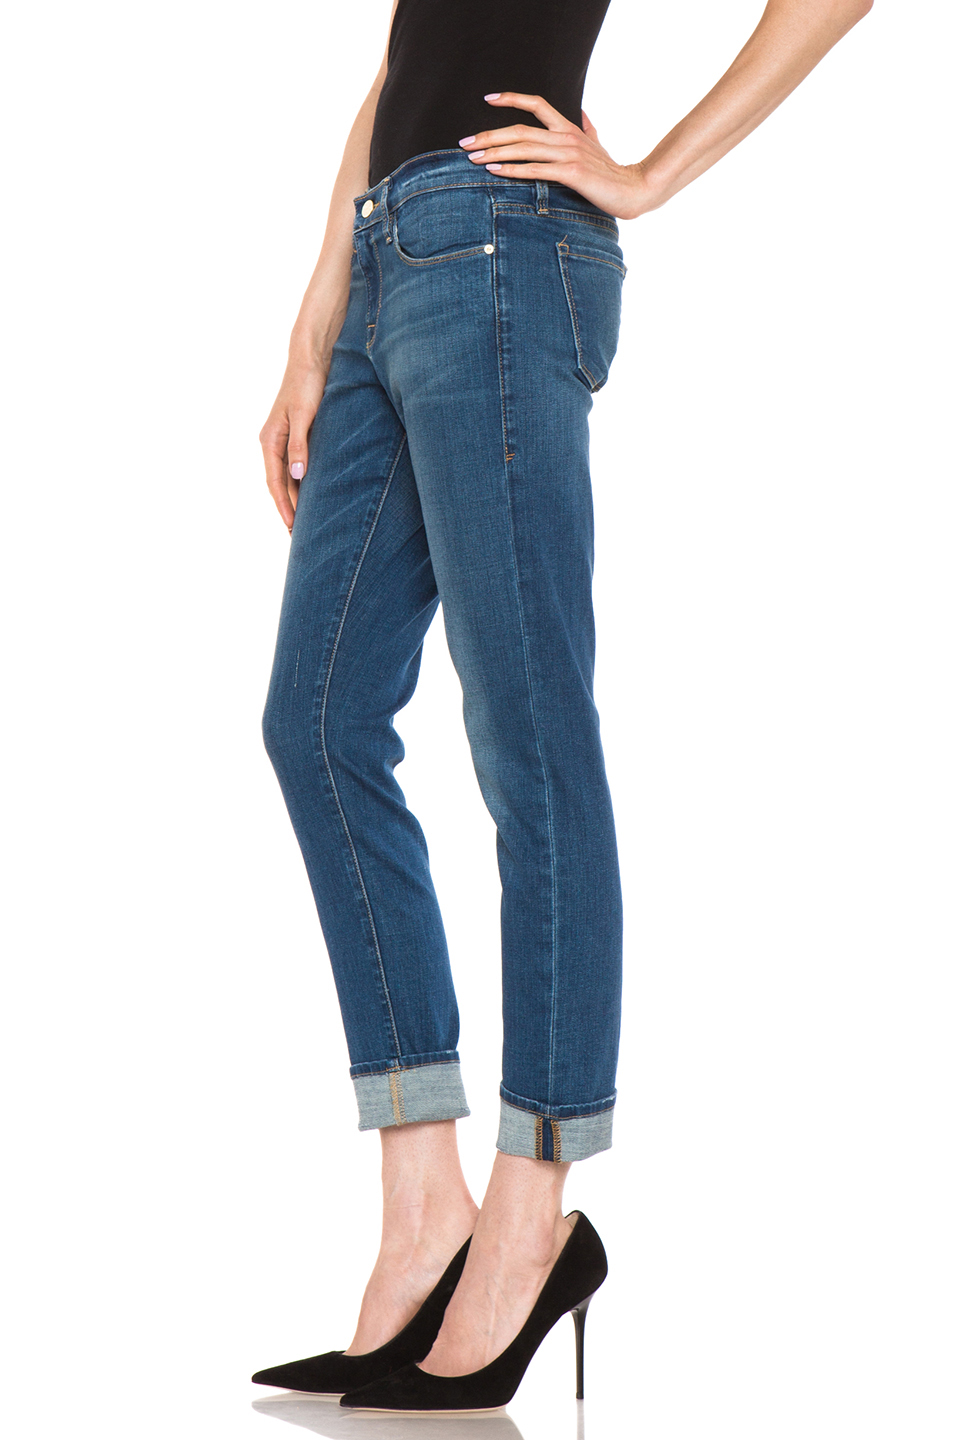 Astonishing Frame Le Garcon Jeans | Amazing Frame Denim Le Garcon